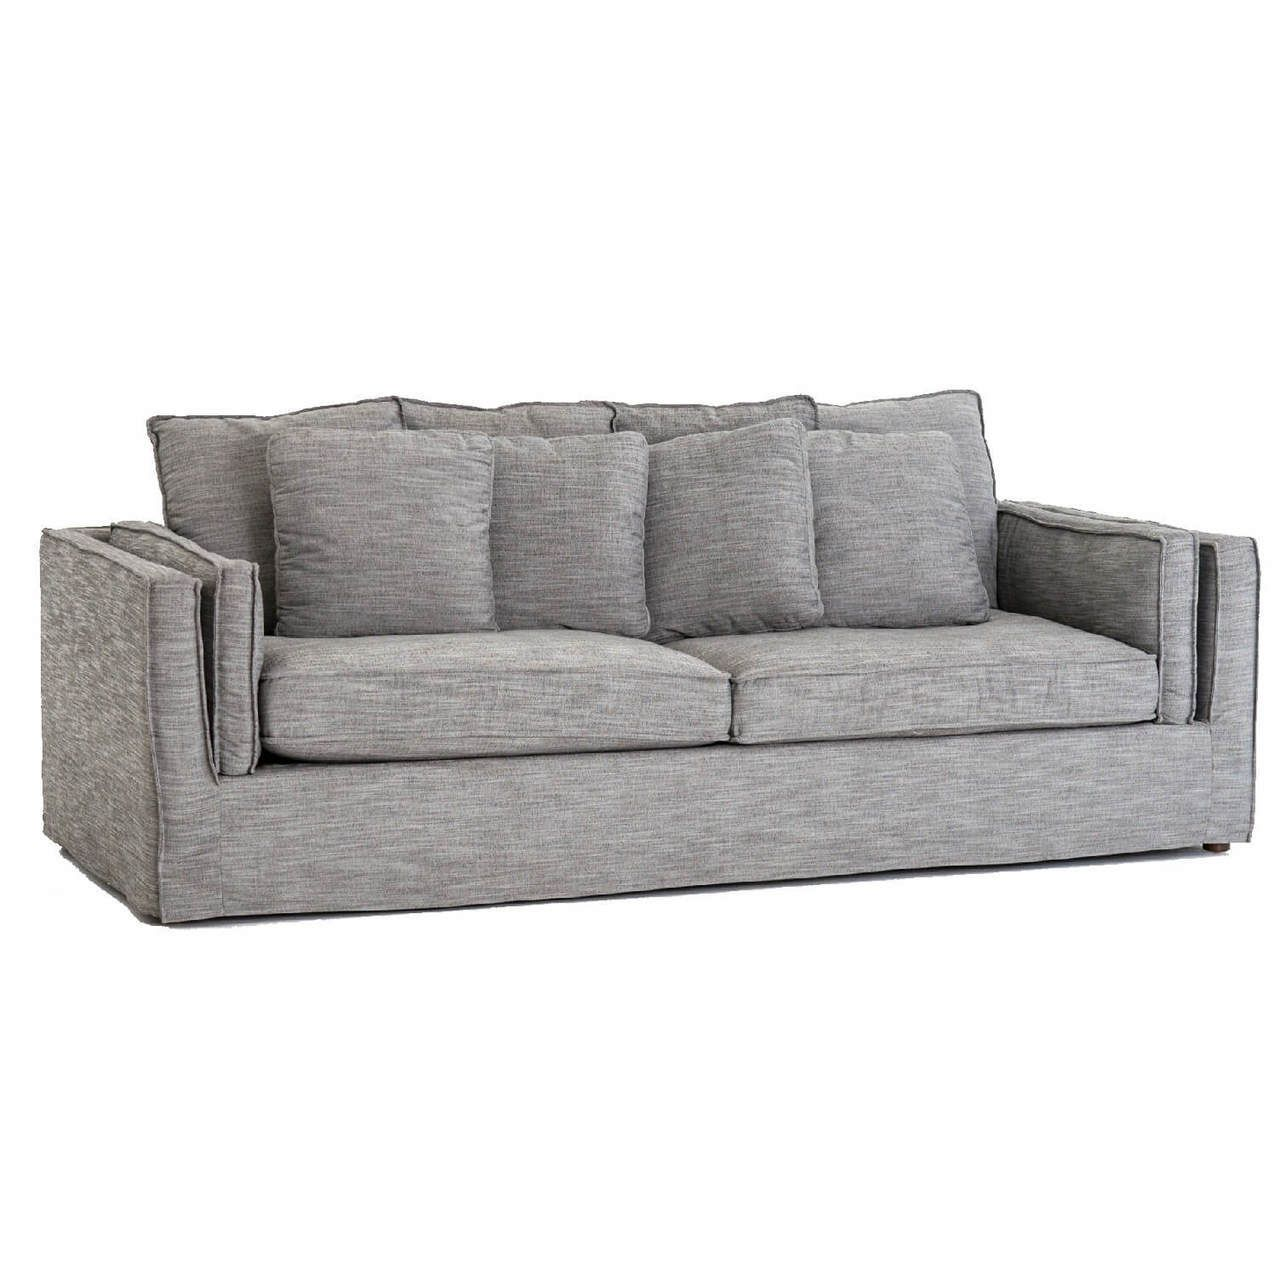 Dark Grey Slip Cover Sofa